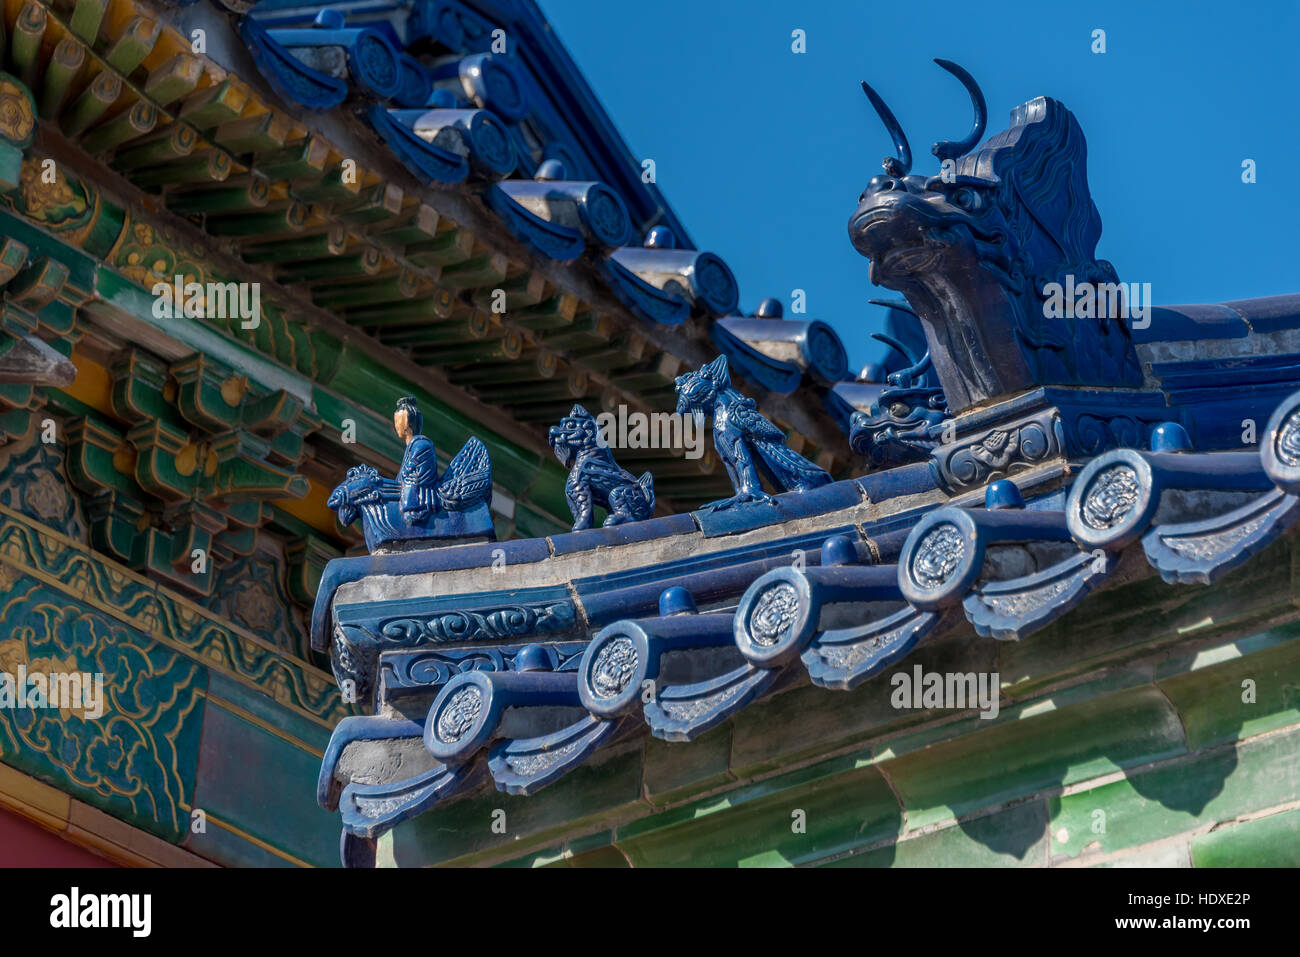 Detail of figures on blue ceramic roof tile at Temple of Heaven ...